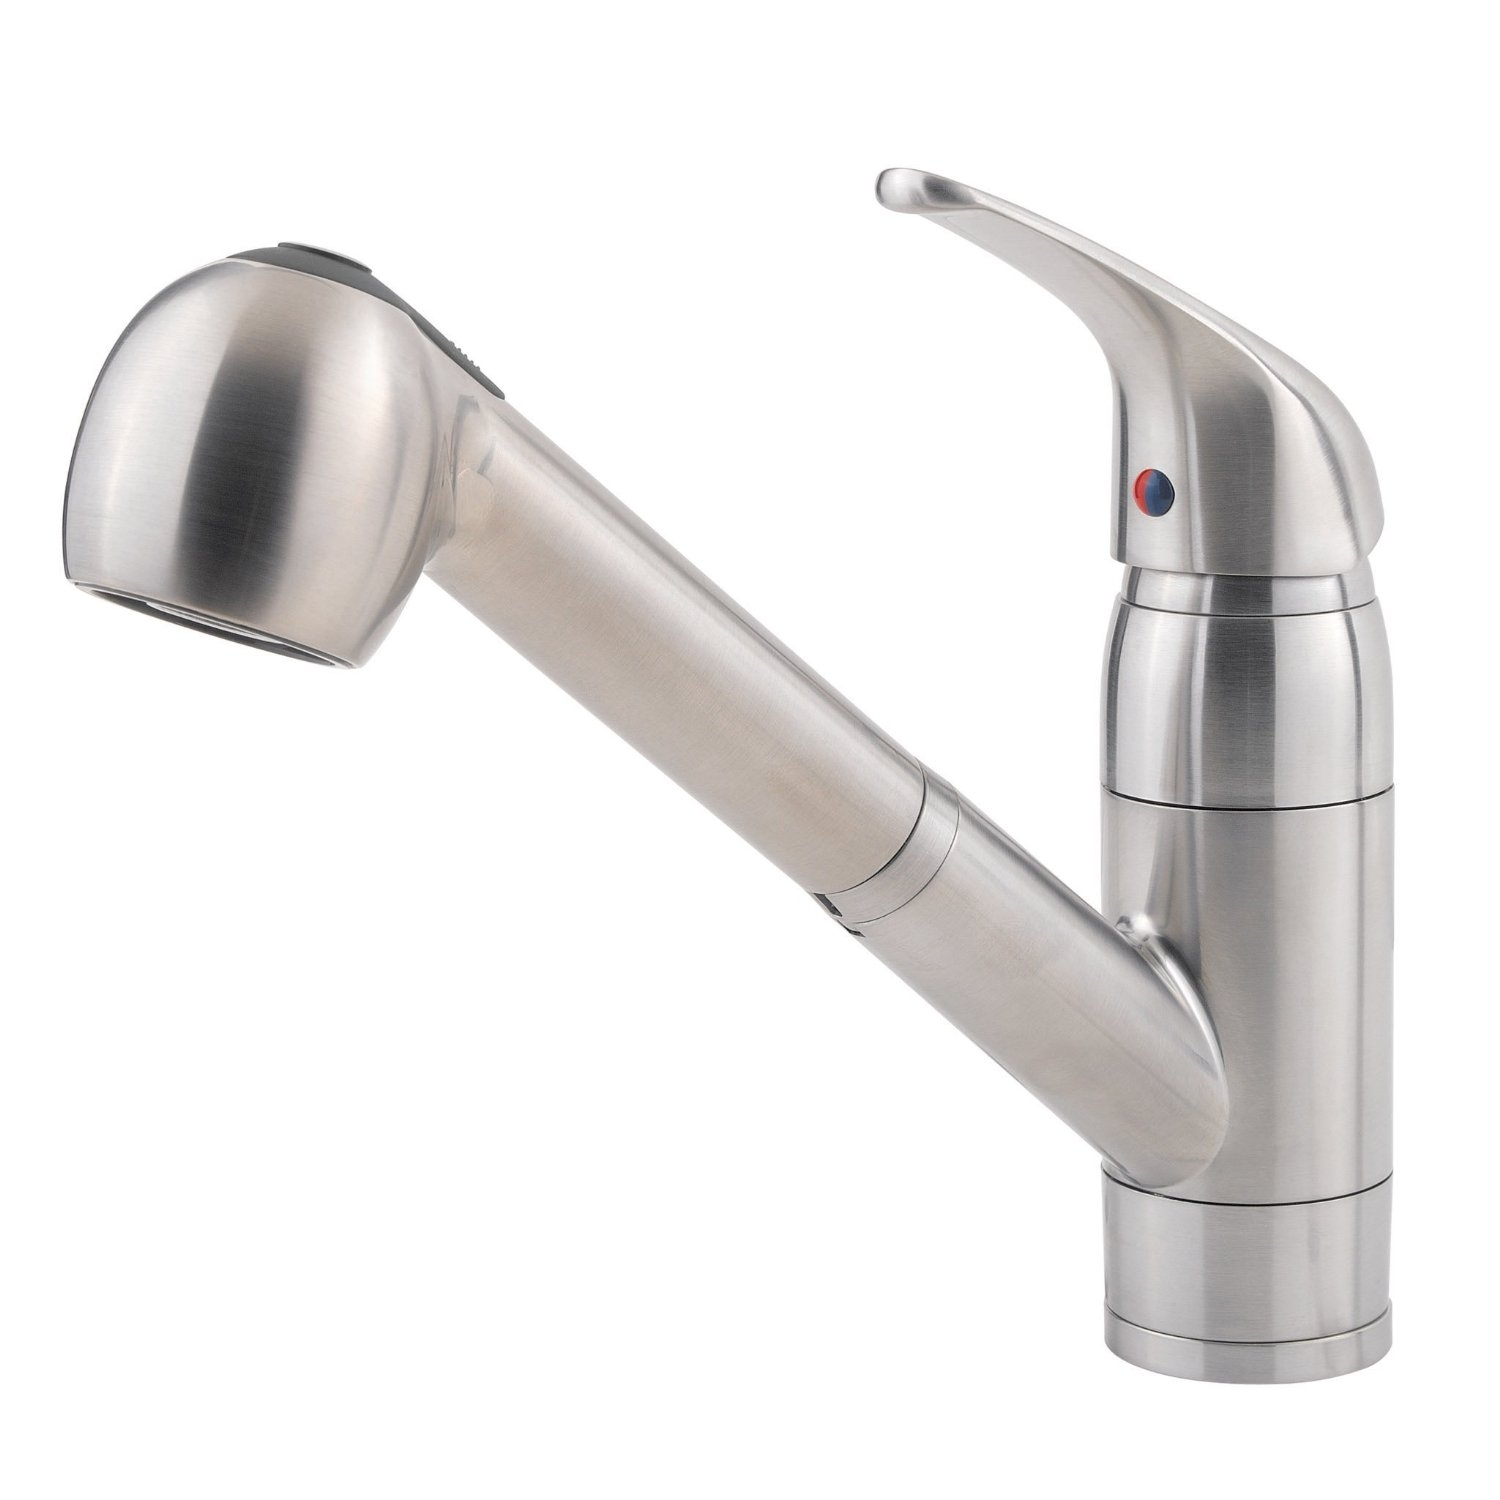 Ideas, pfister pfirst series 1 handle pull out kitchen faucet review throughout dimensions 1500 x 1500  .